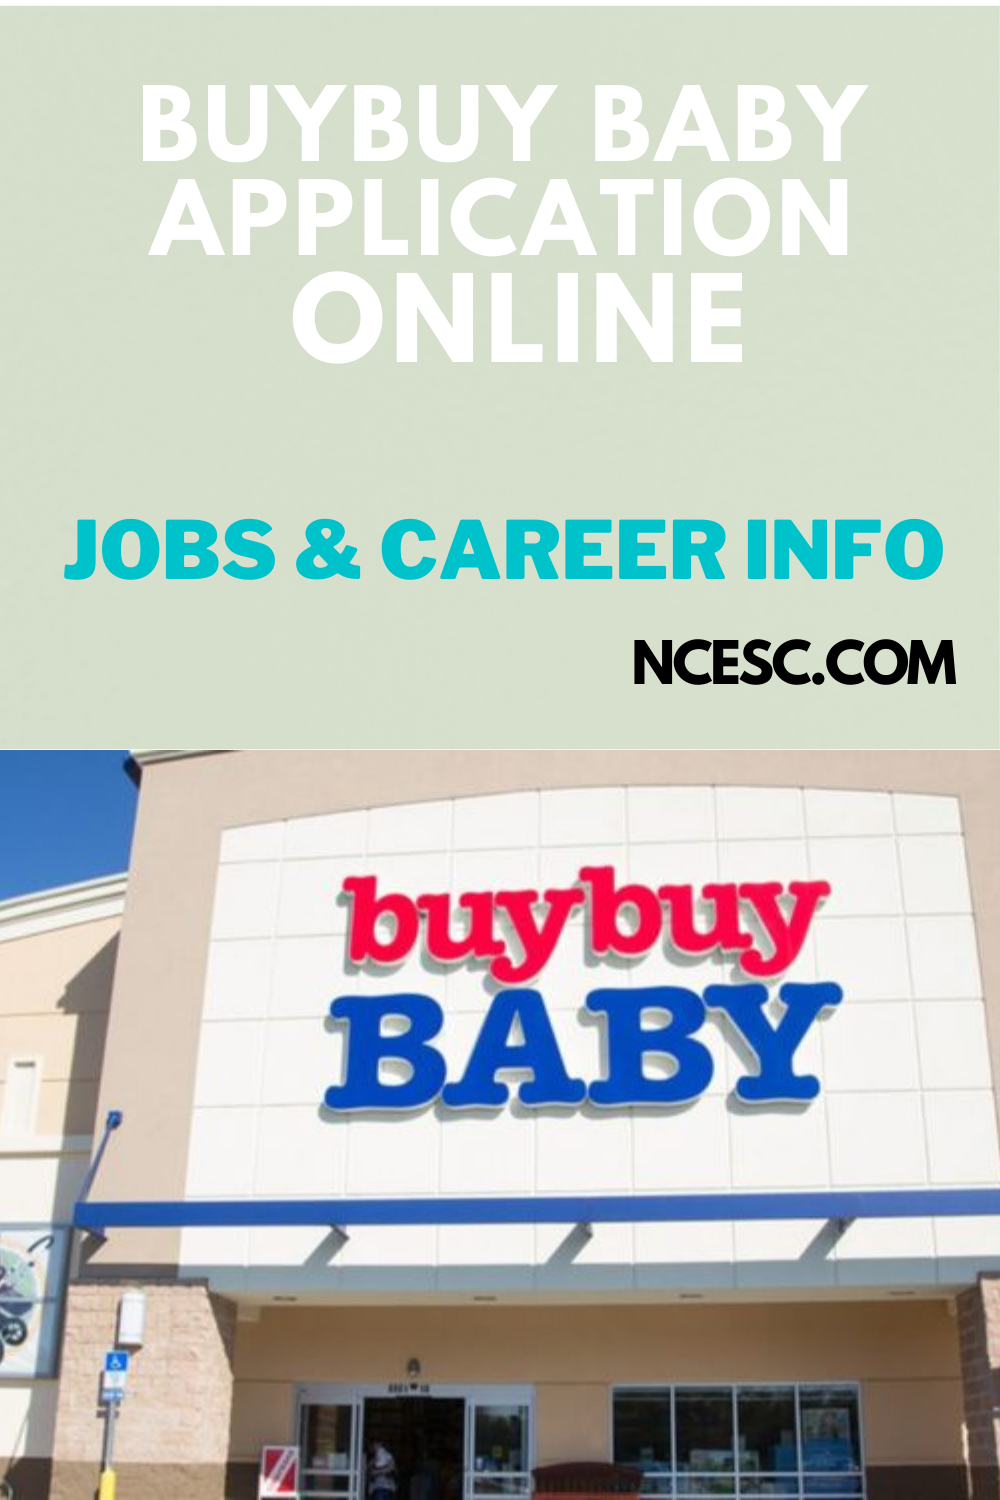 buybuy baby application